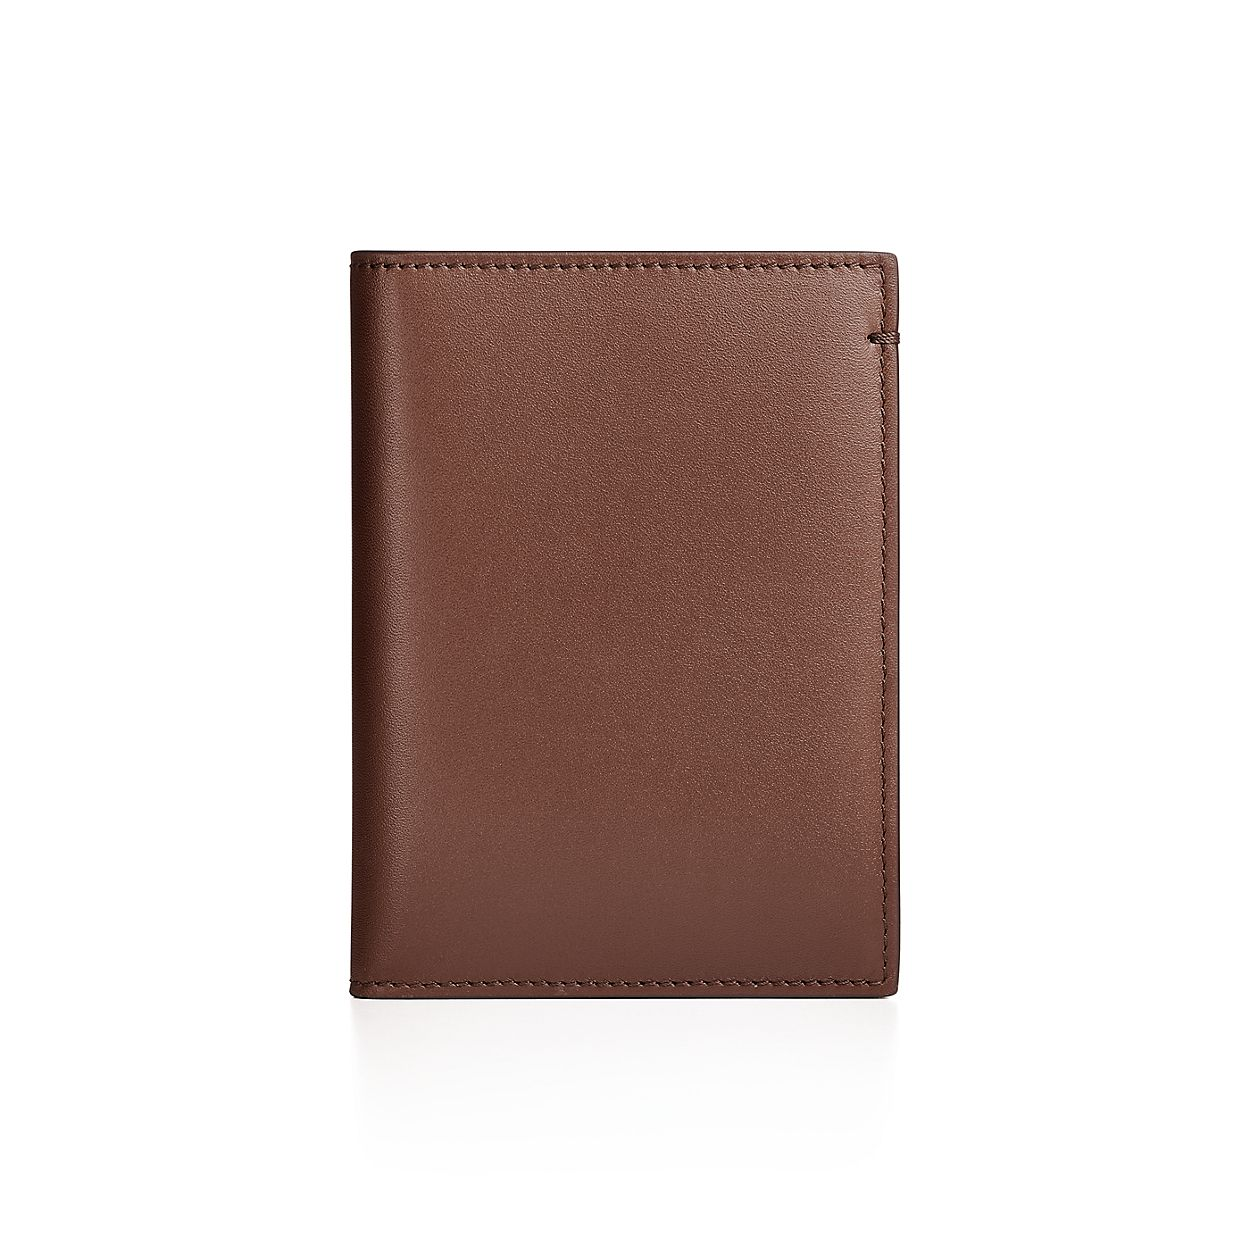 Passport cover in saddle smooth calfskin leather Tiffany & Co. 3hPghbbVSO